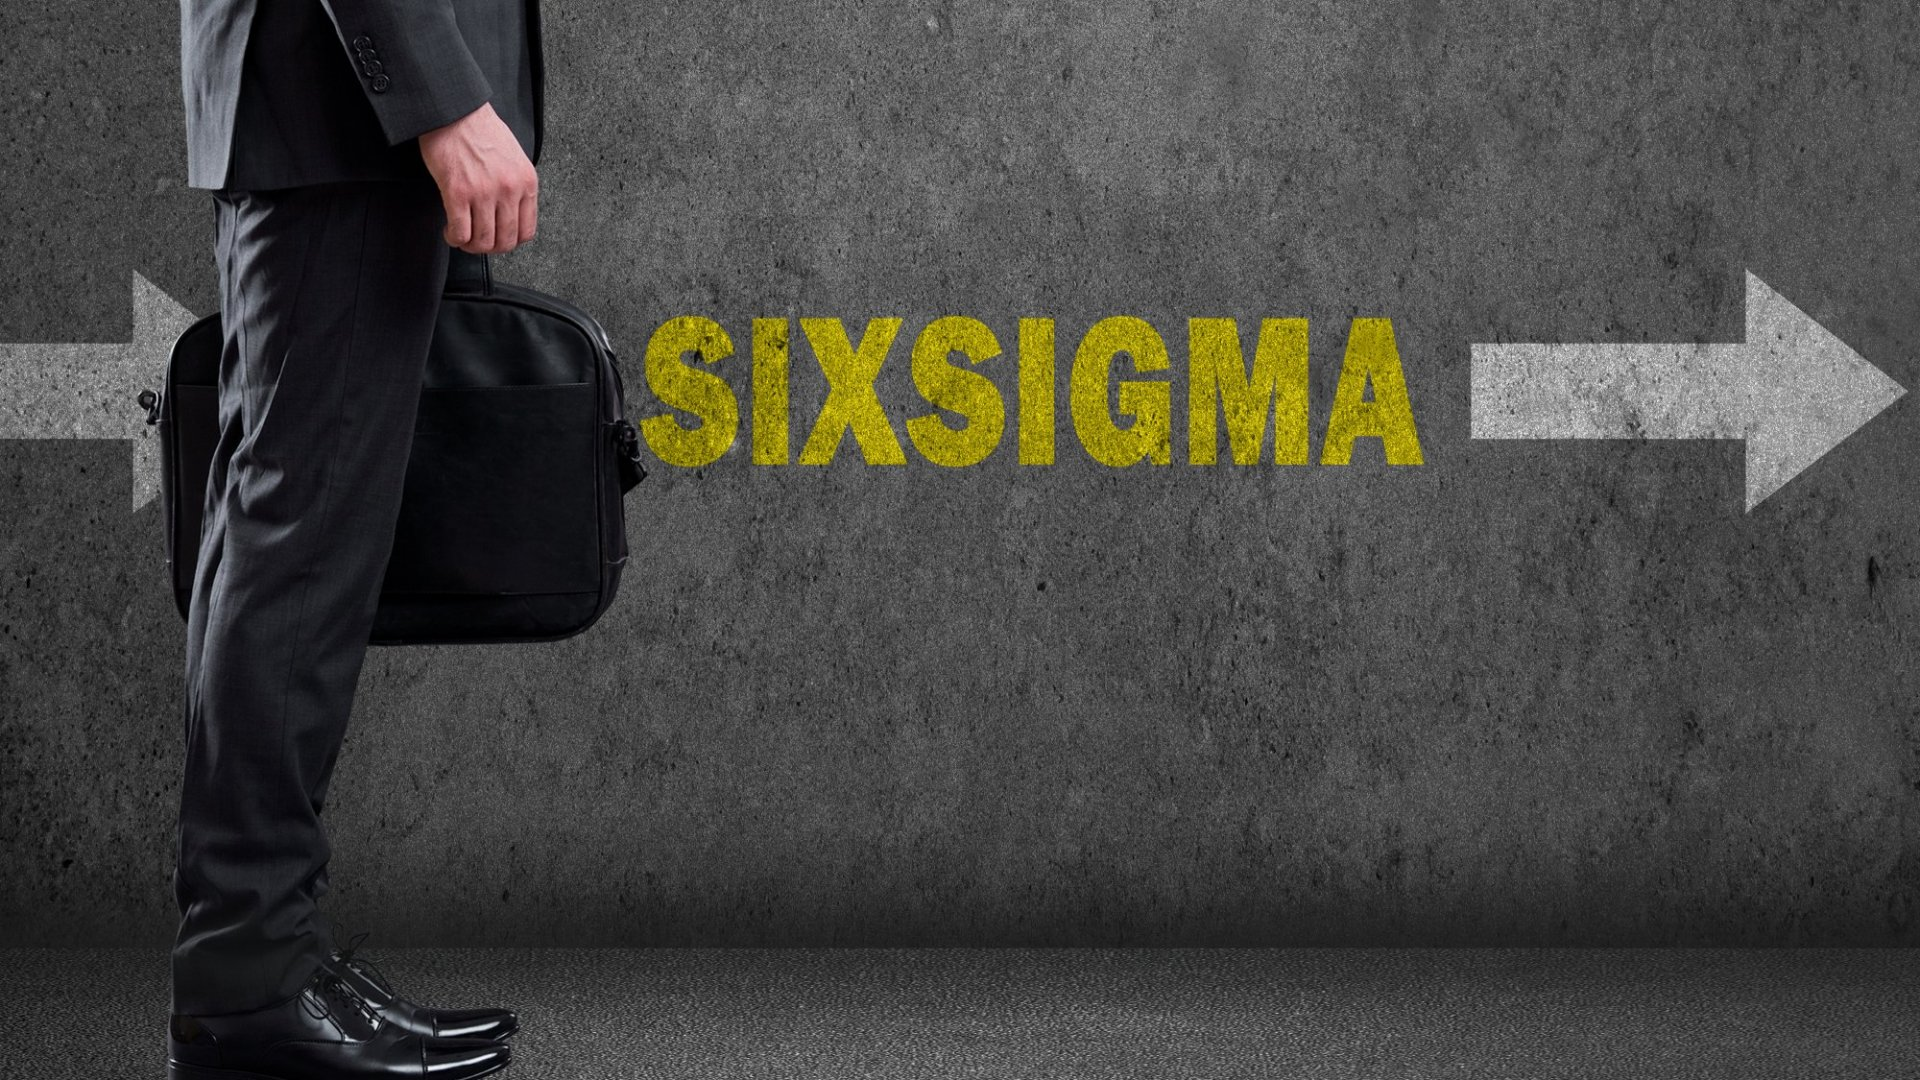 Top Six Sigma Consultant Saves Billions for Clients. Then Explains Why Most Process Improvements Fail Utterly.